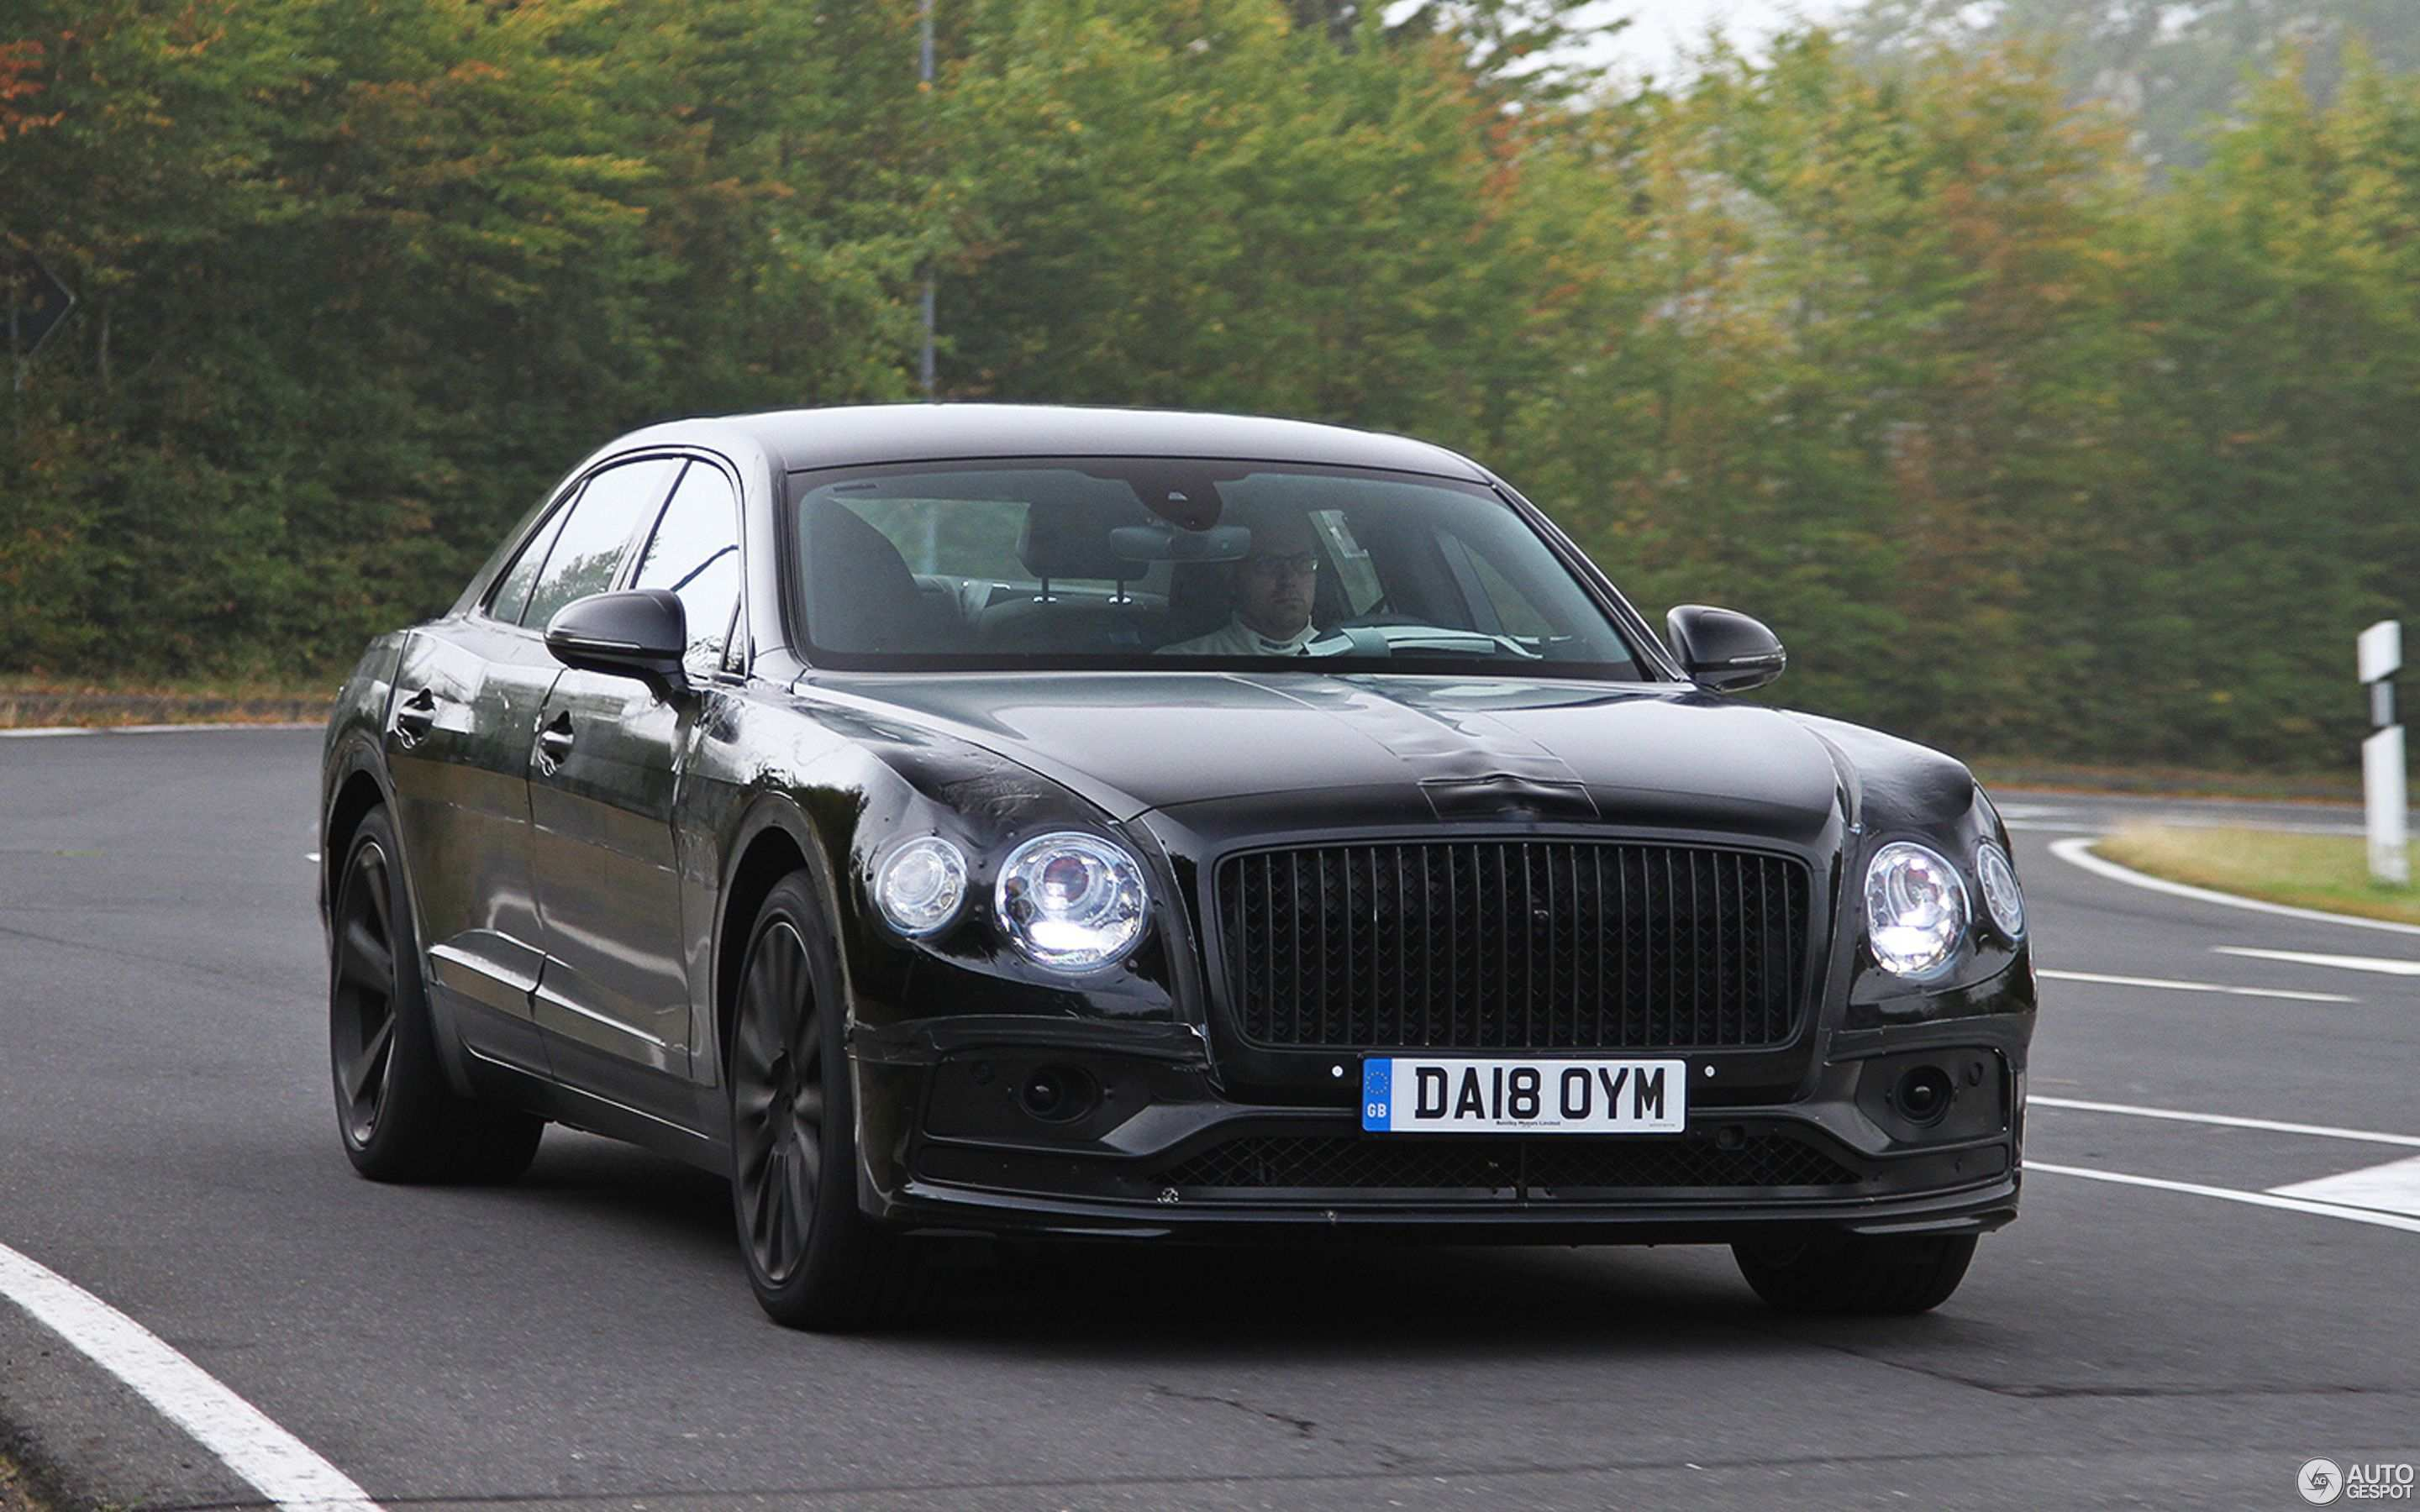 15 Concept of 2020 Bentley Flying Spur Price with 2020 Bentley Flying Spur